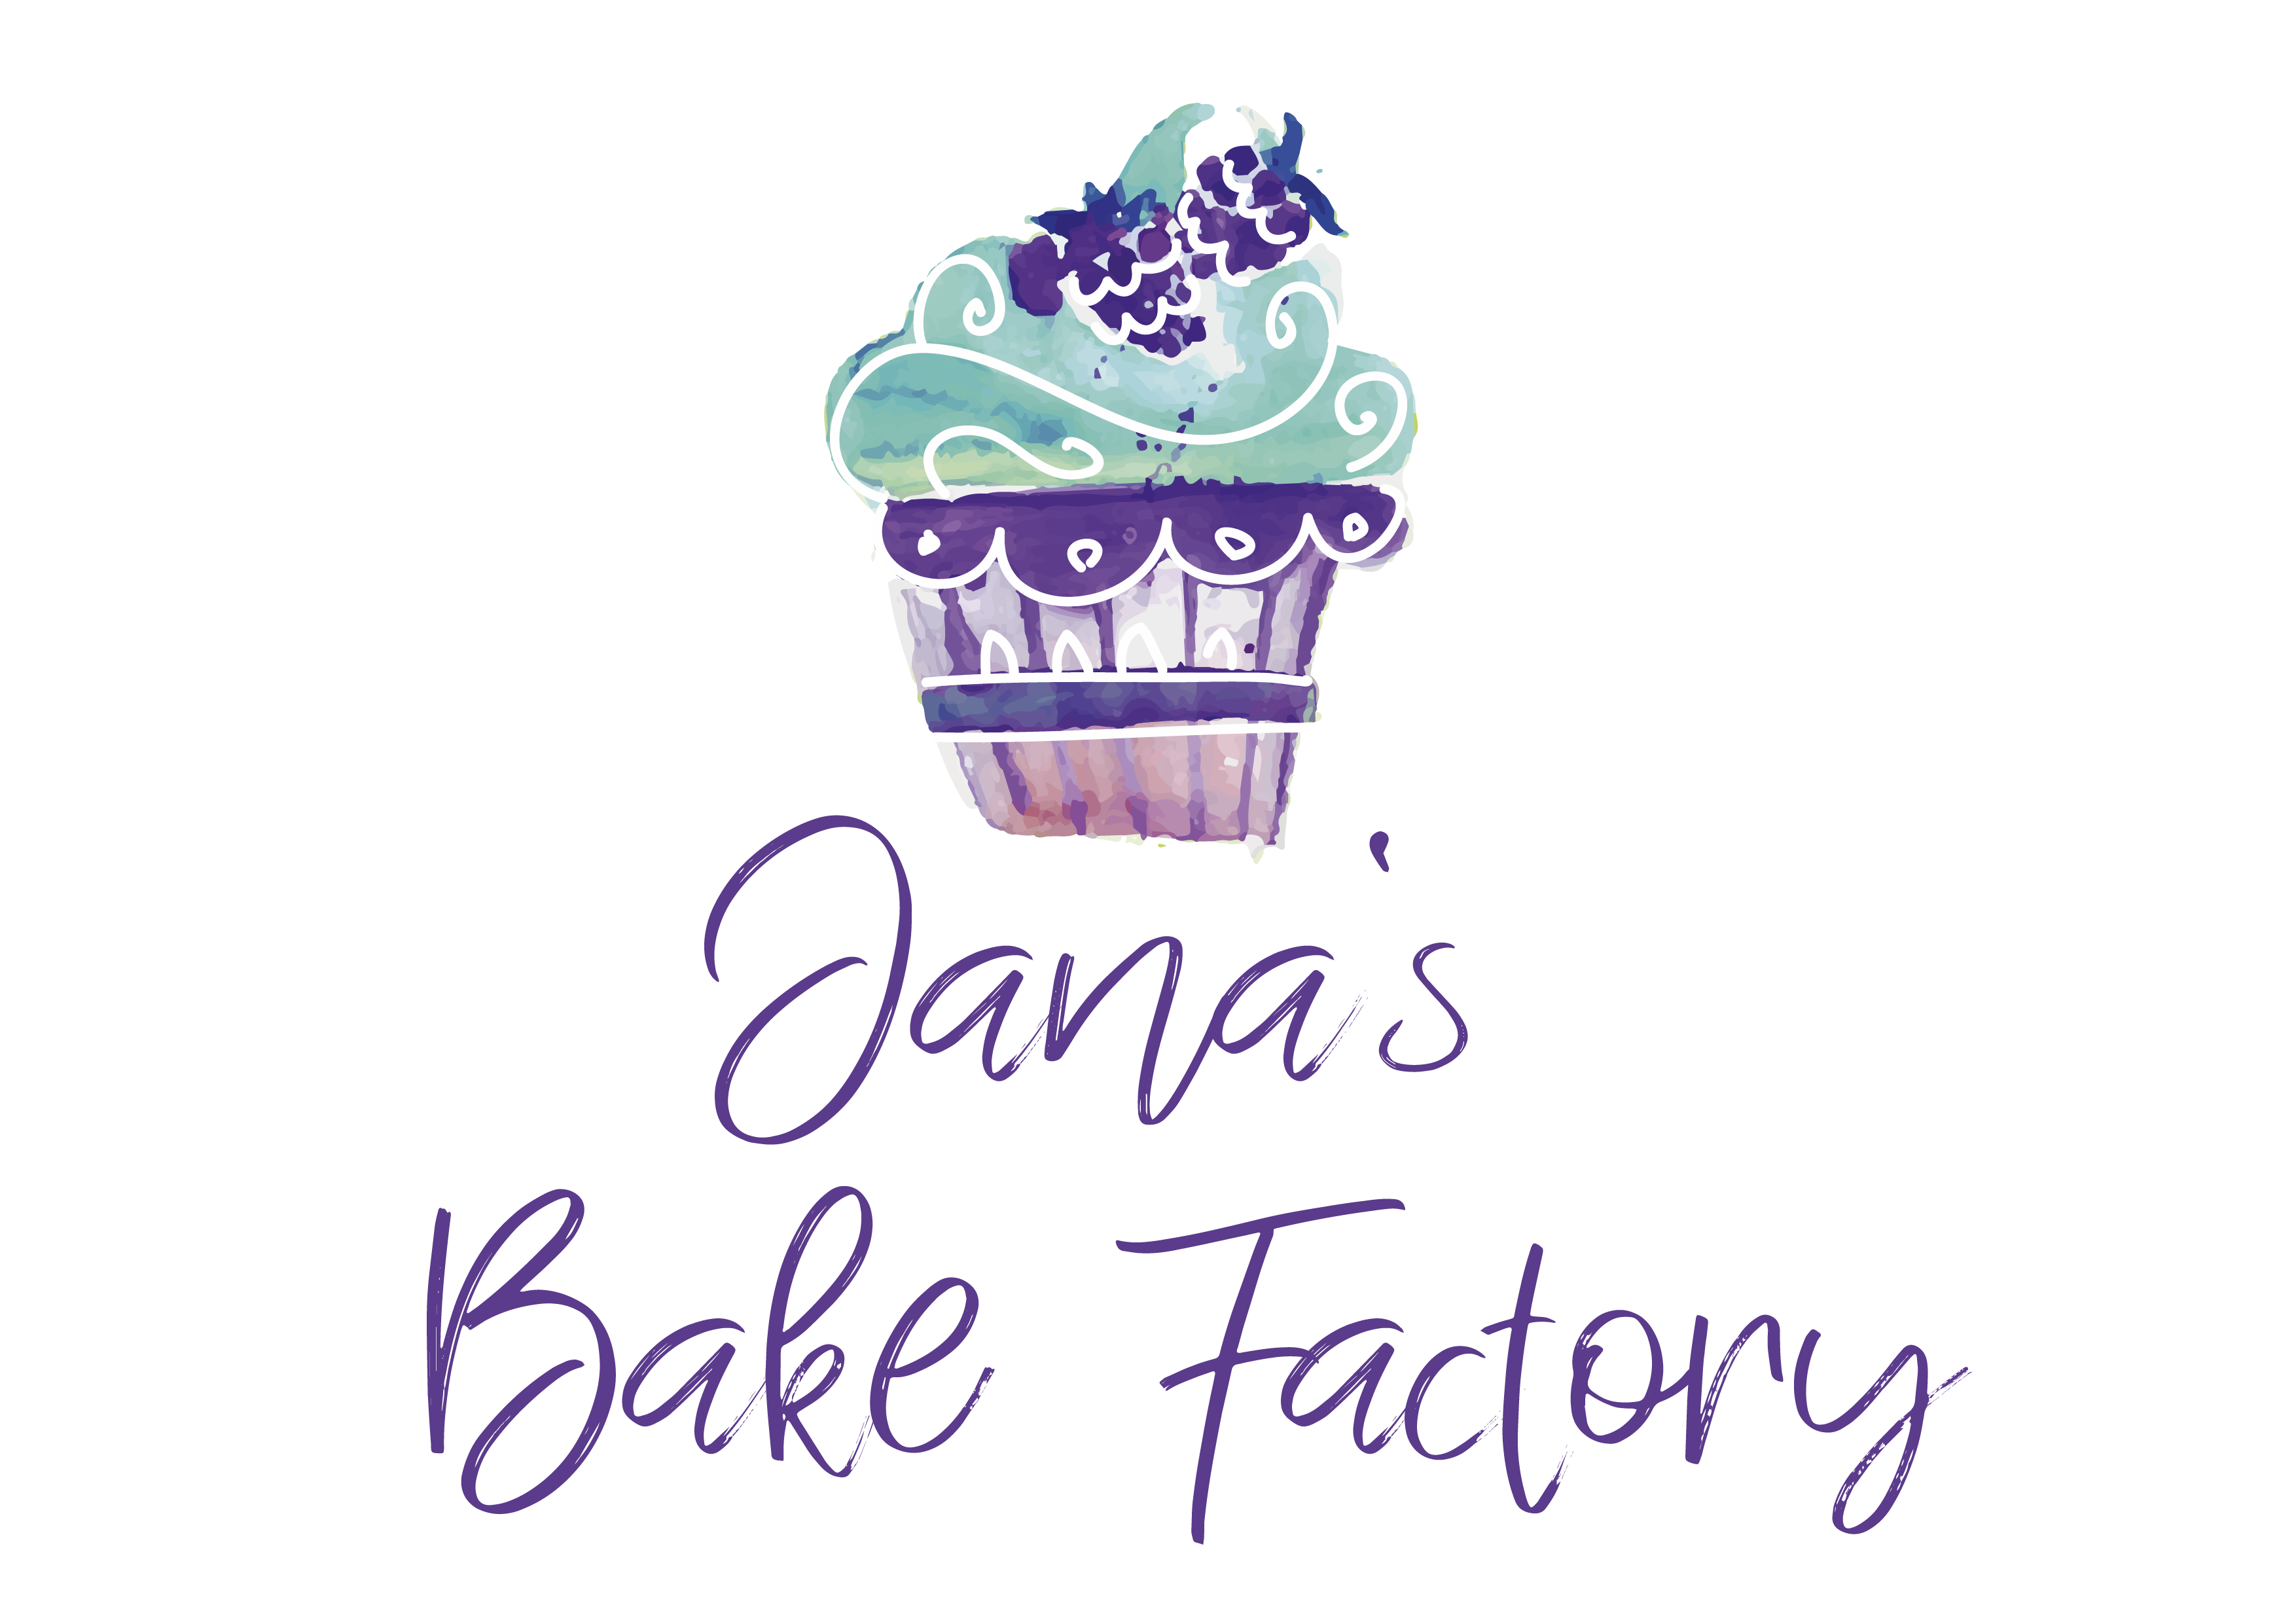 Jana's Bake Factory